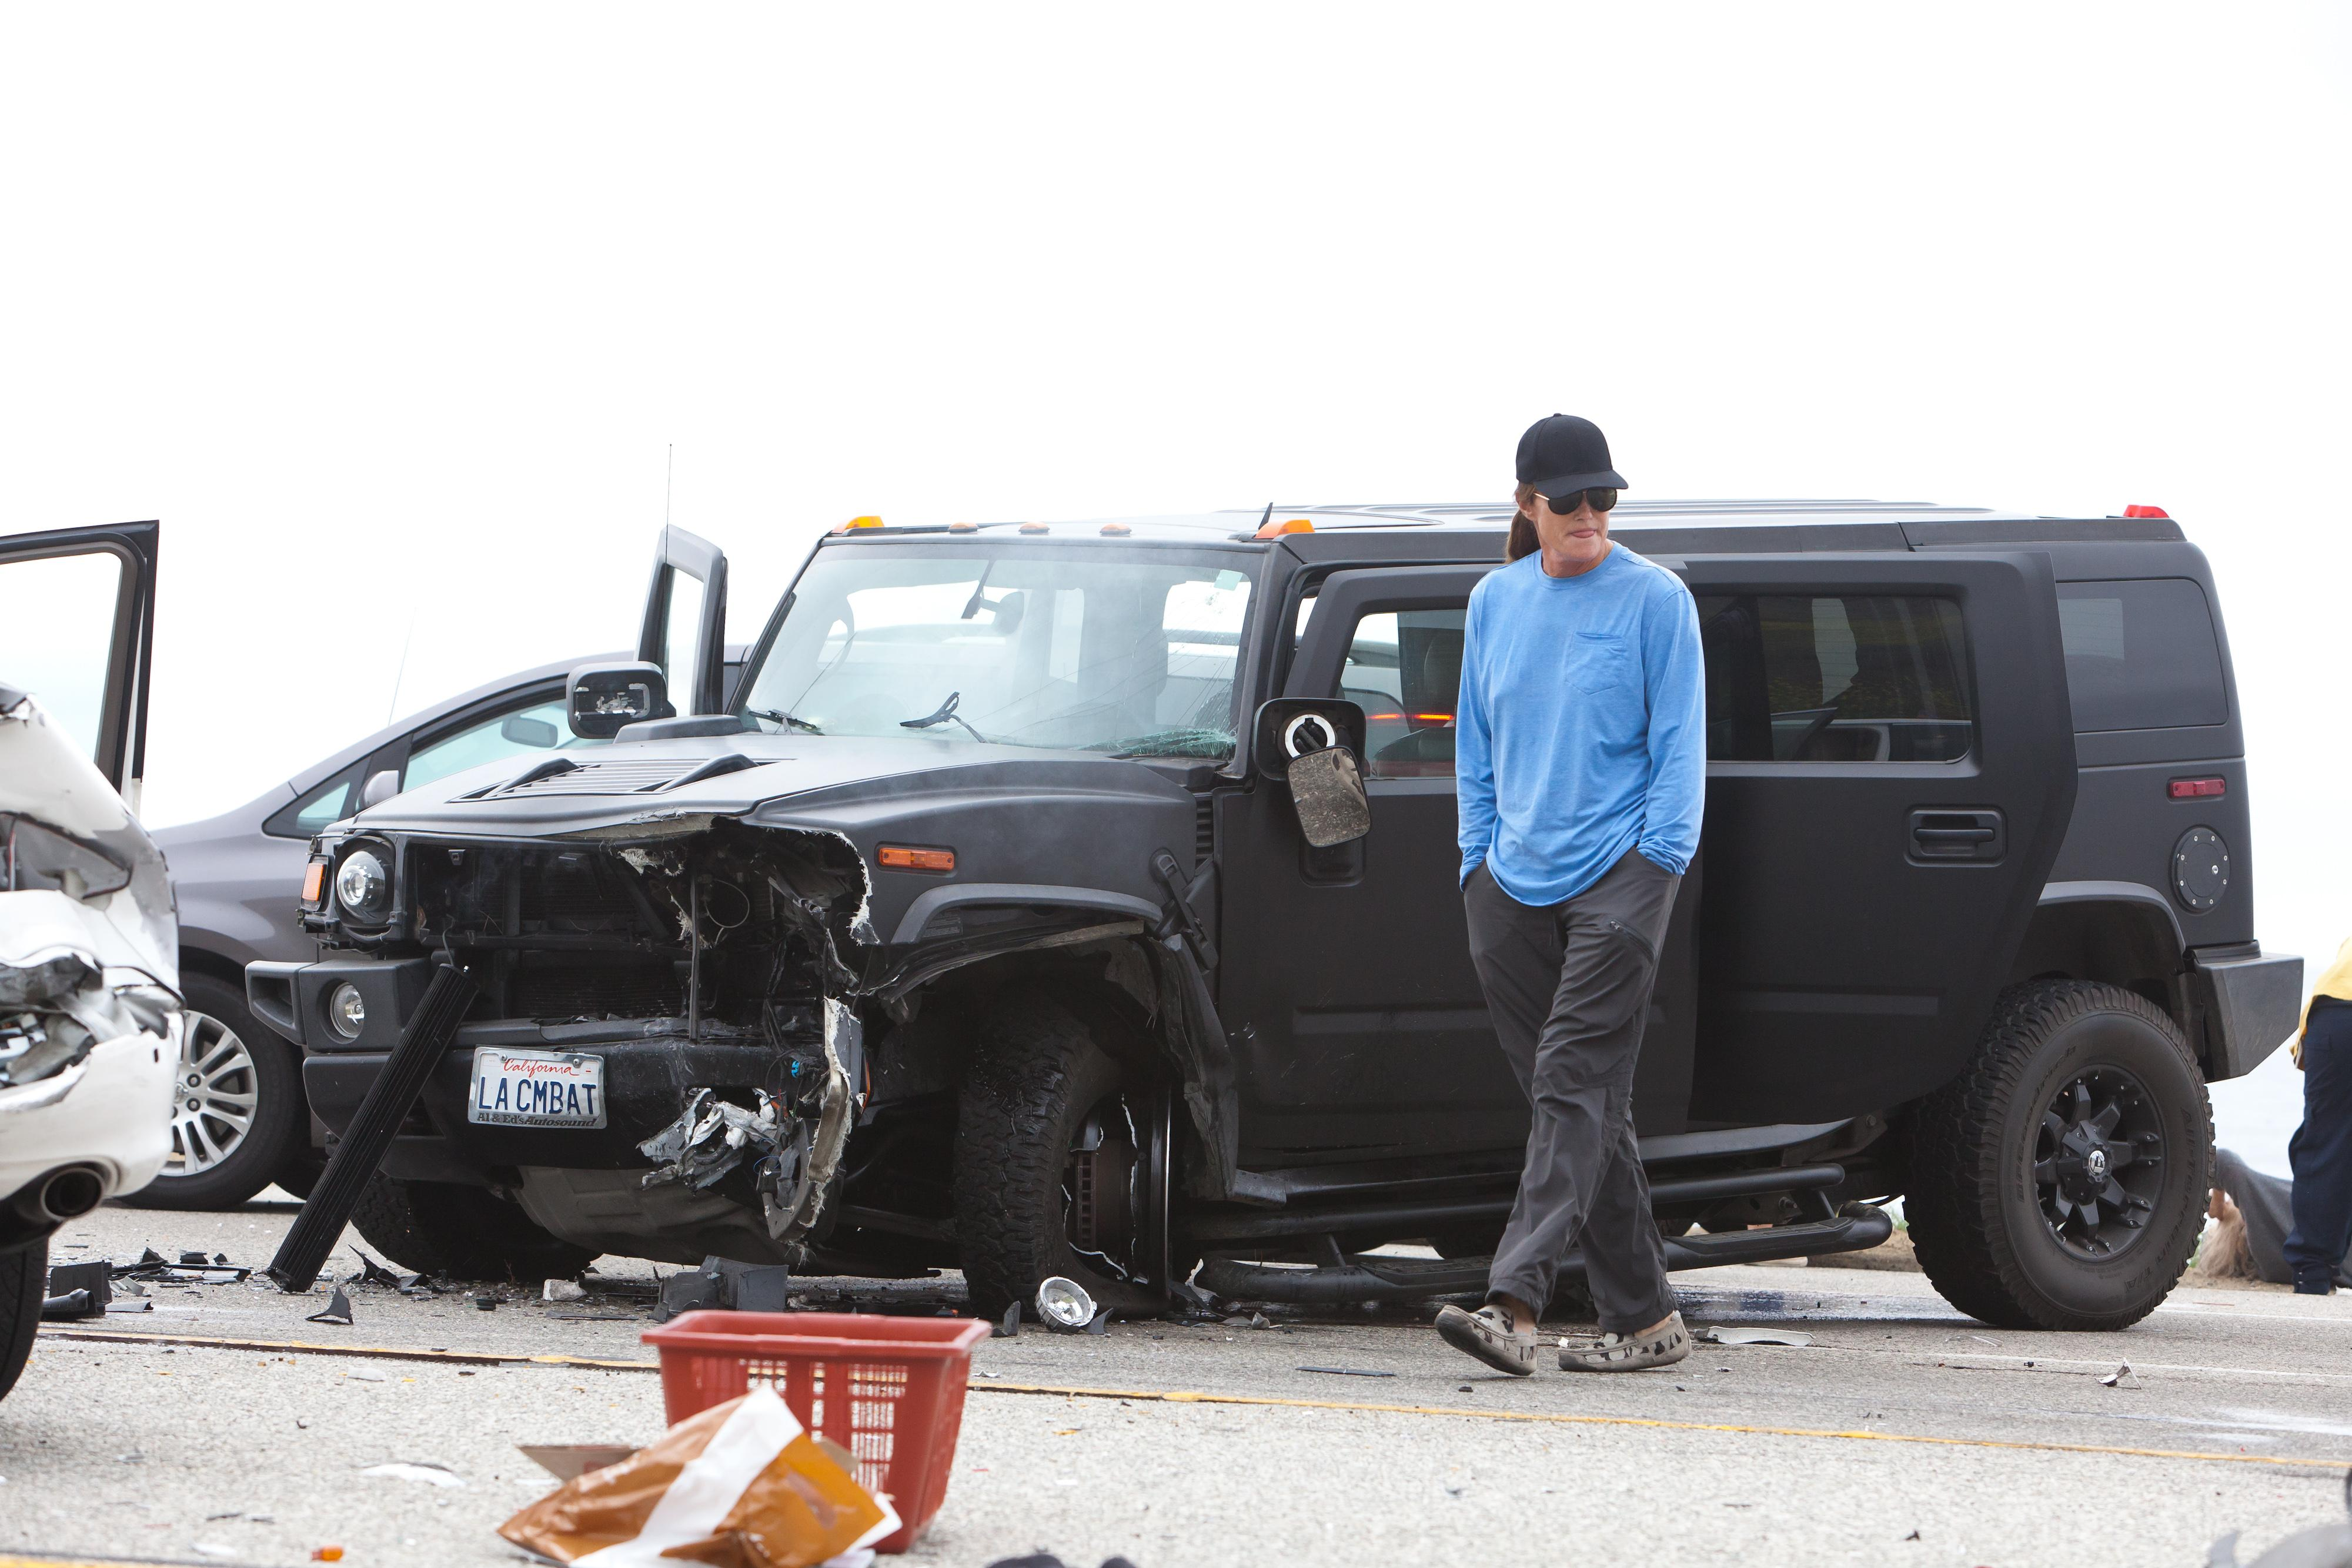 EXCLUSIVE TO INF. **PREMIUM RATES APPLY** Bruce Jenner In a Car Accident – Moment of Impact